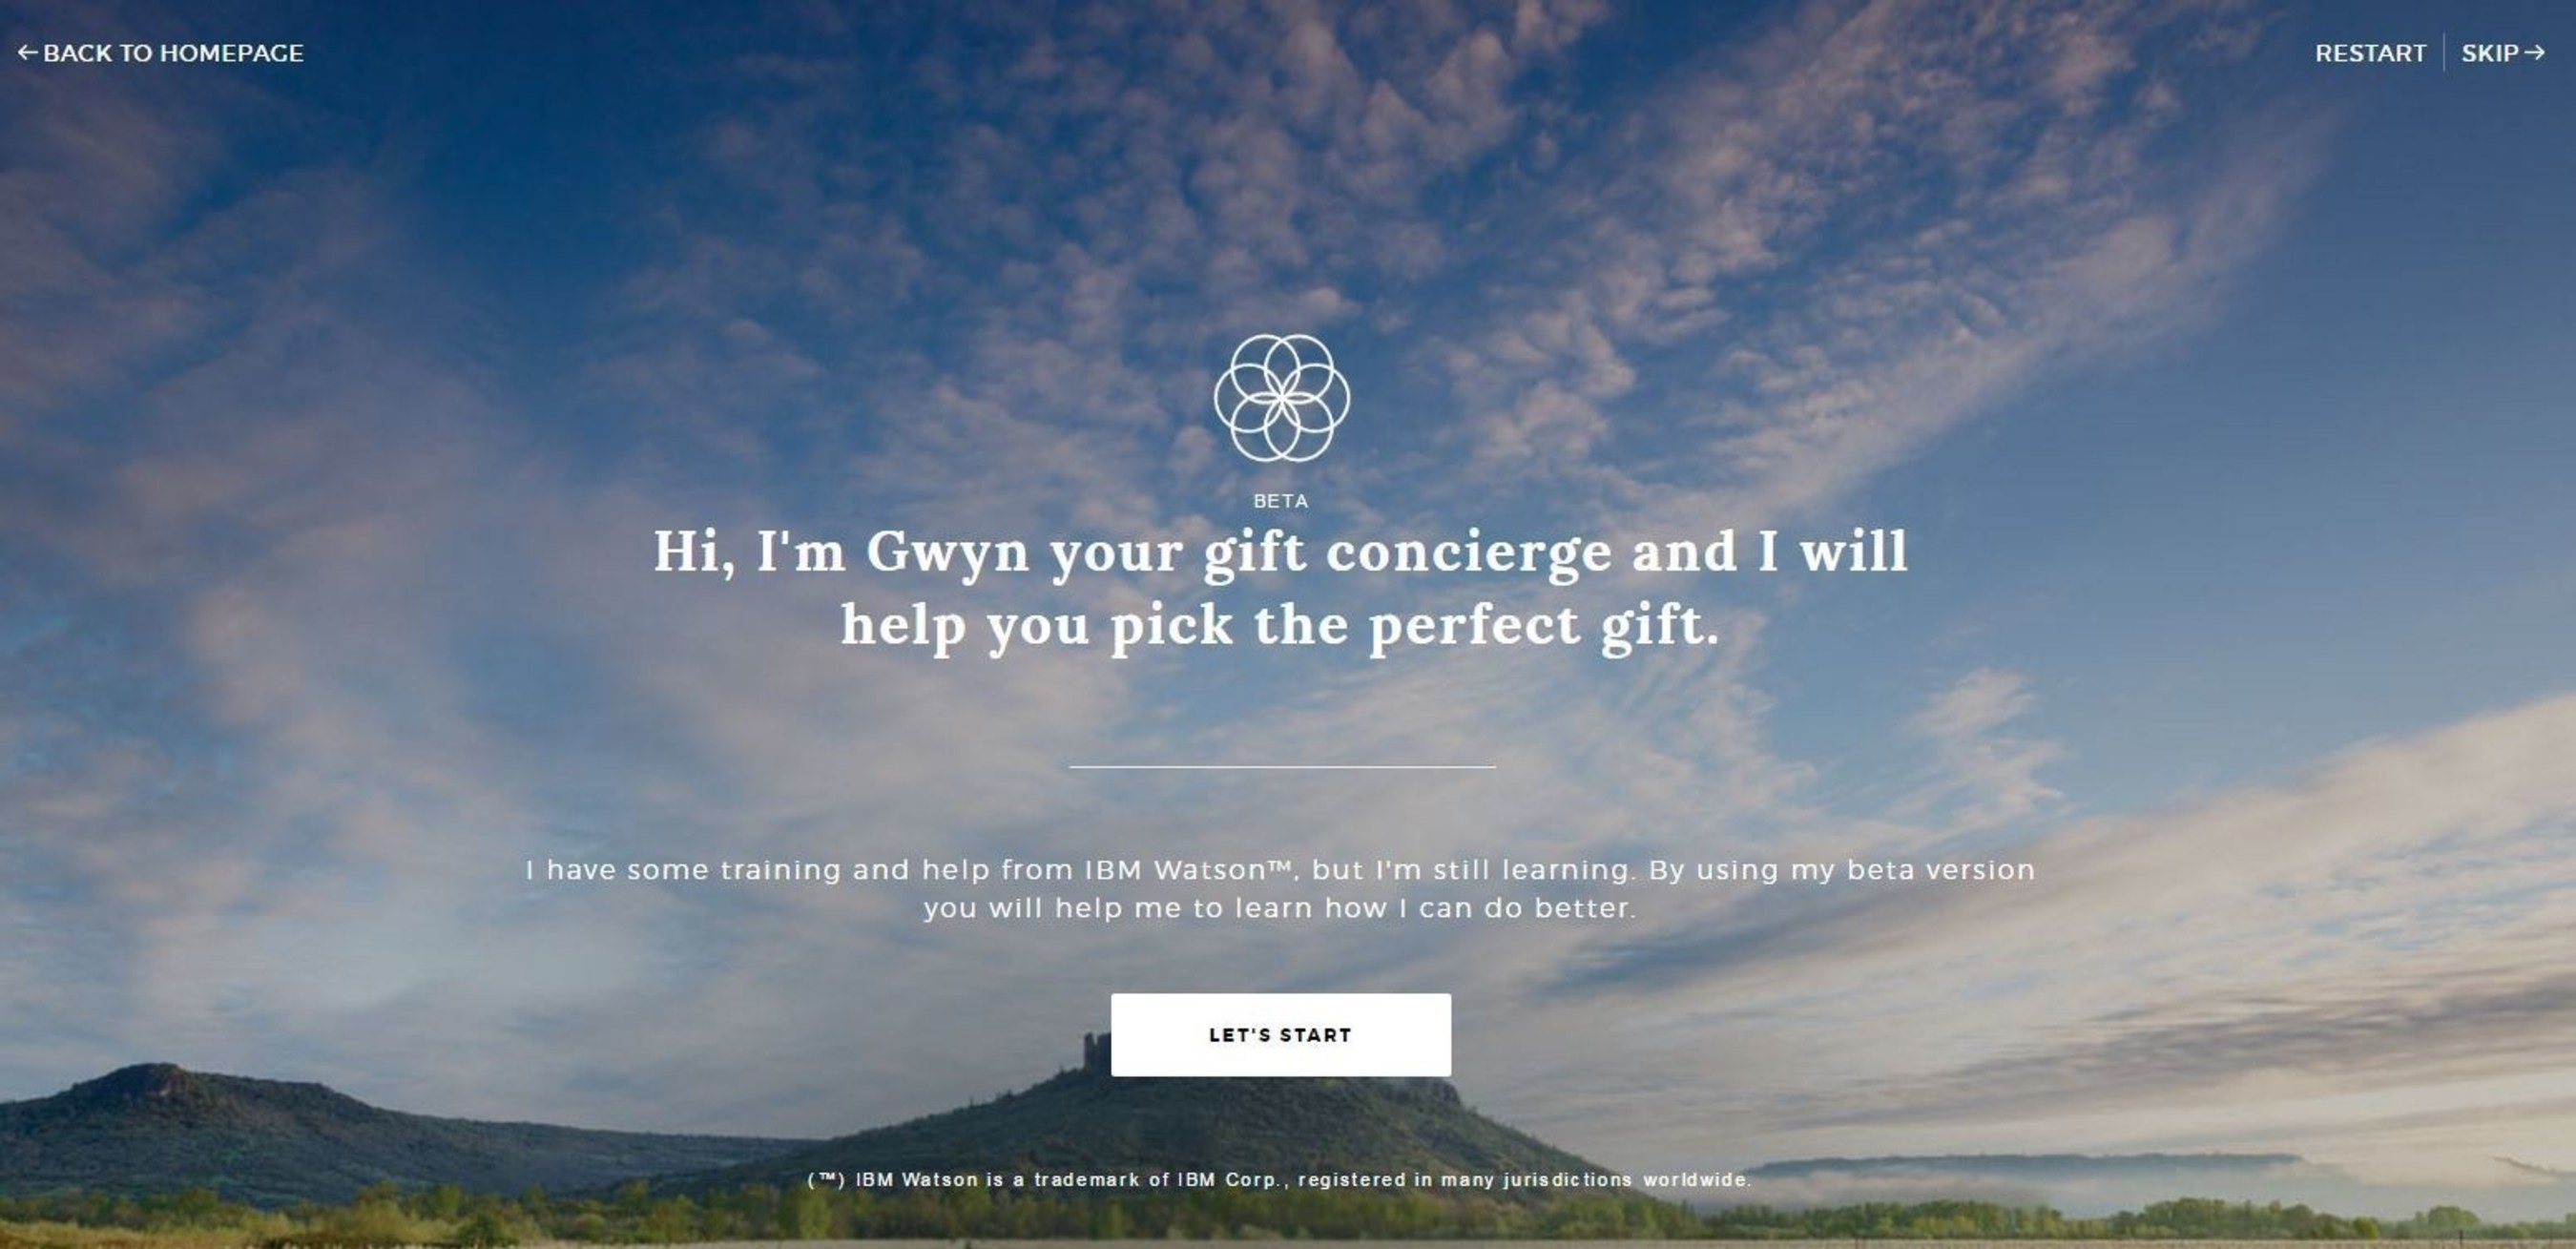 """1-800-FLOWERS.COM Launches Beta of """"GWYN,"""" an Artificial Intelligence Powered Online Shopping Experience"""